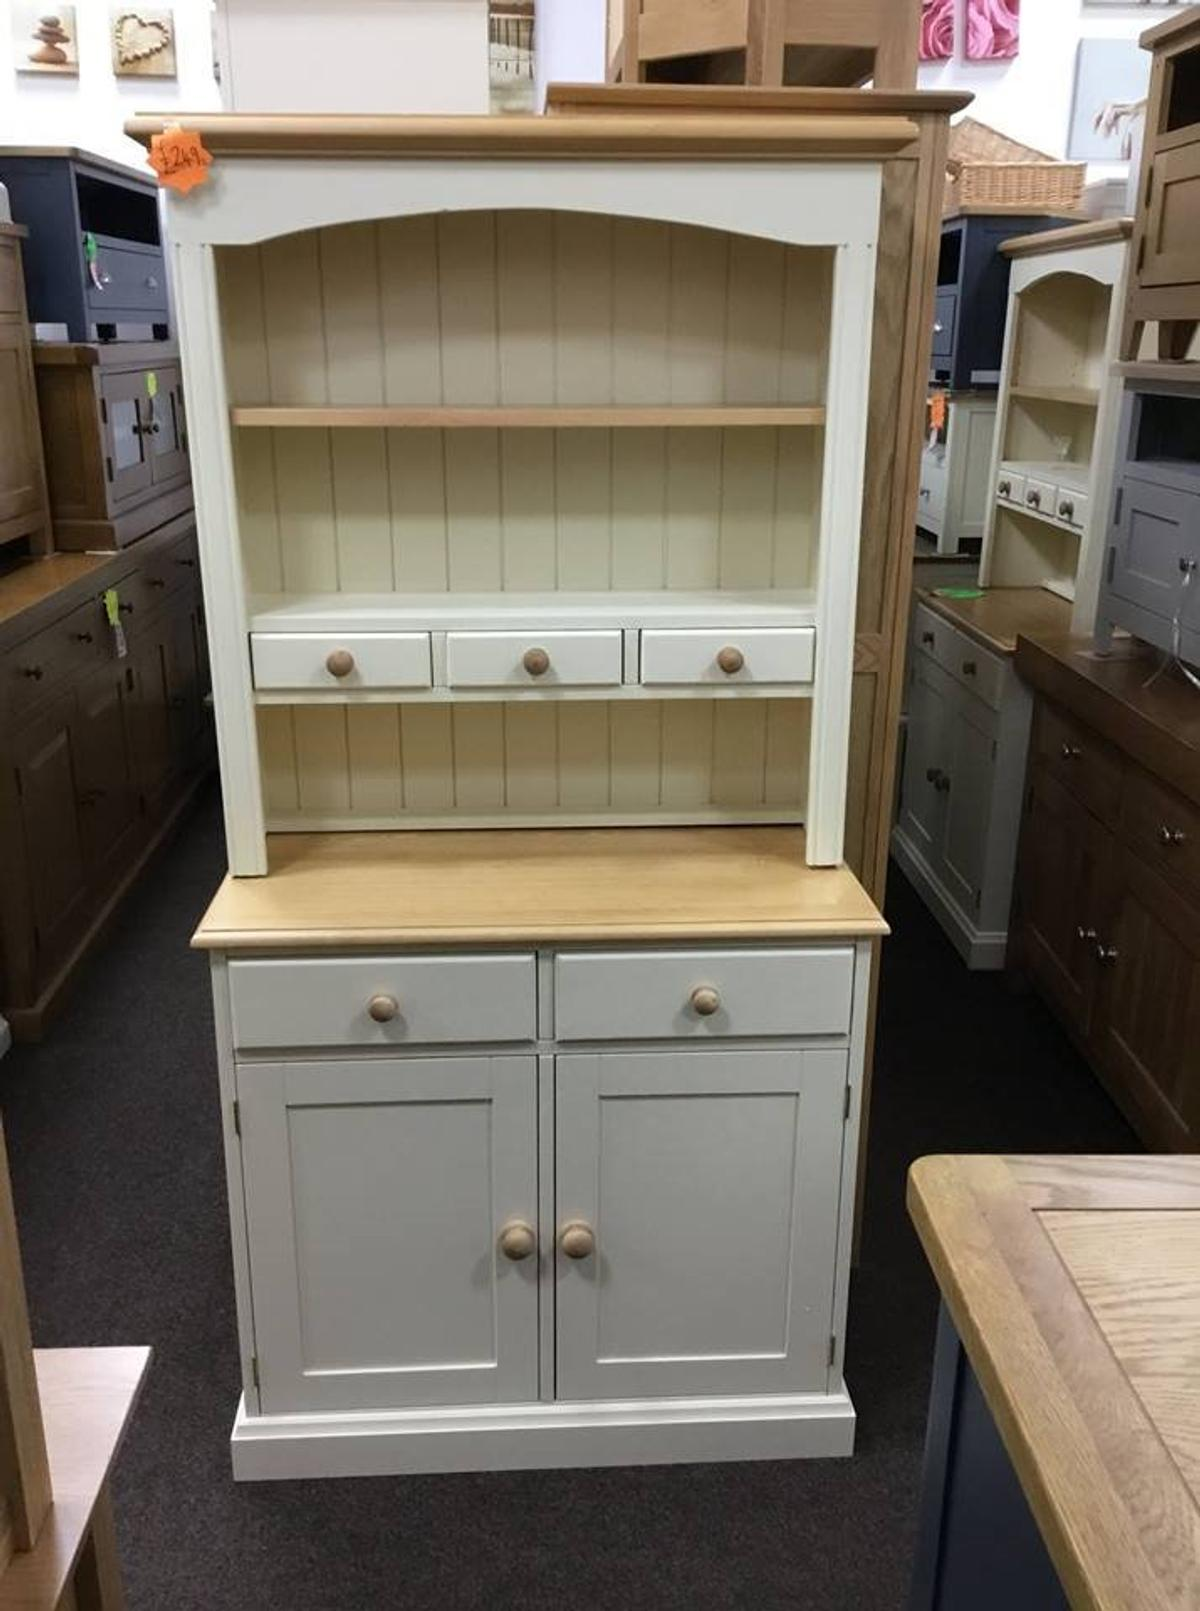 Cream And Pine Kitchen Dresser In Tf2 Telford For 249 00 For Sale Shpock